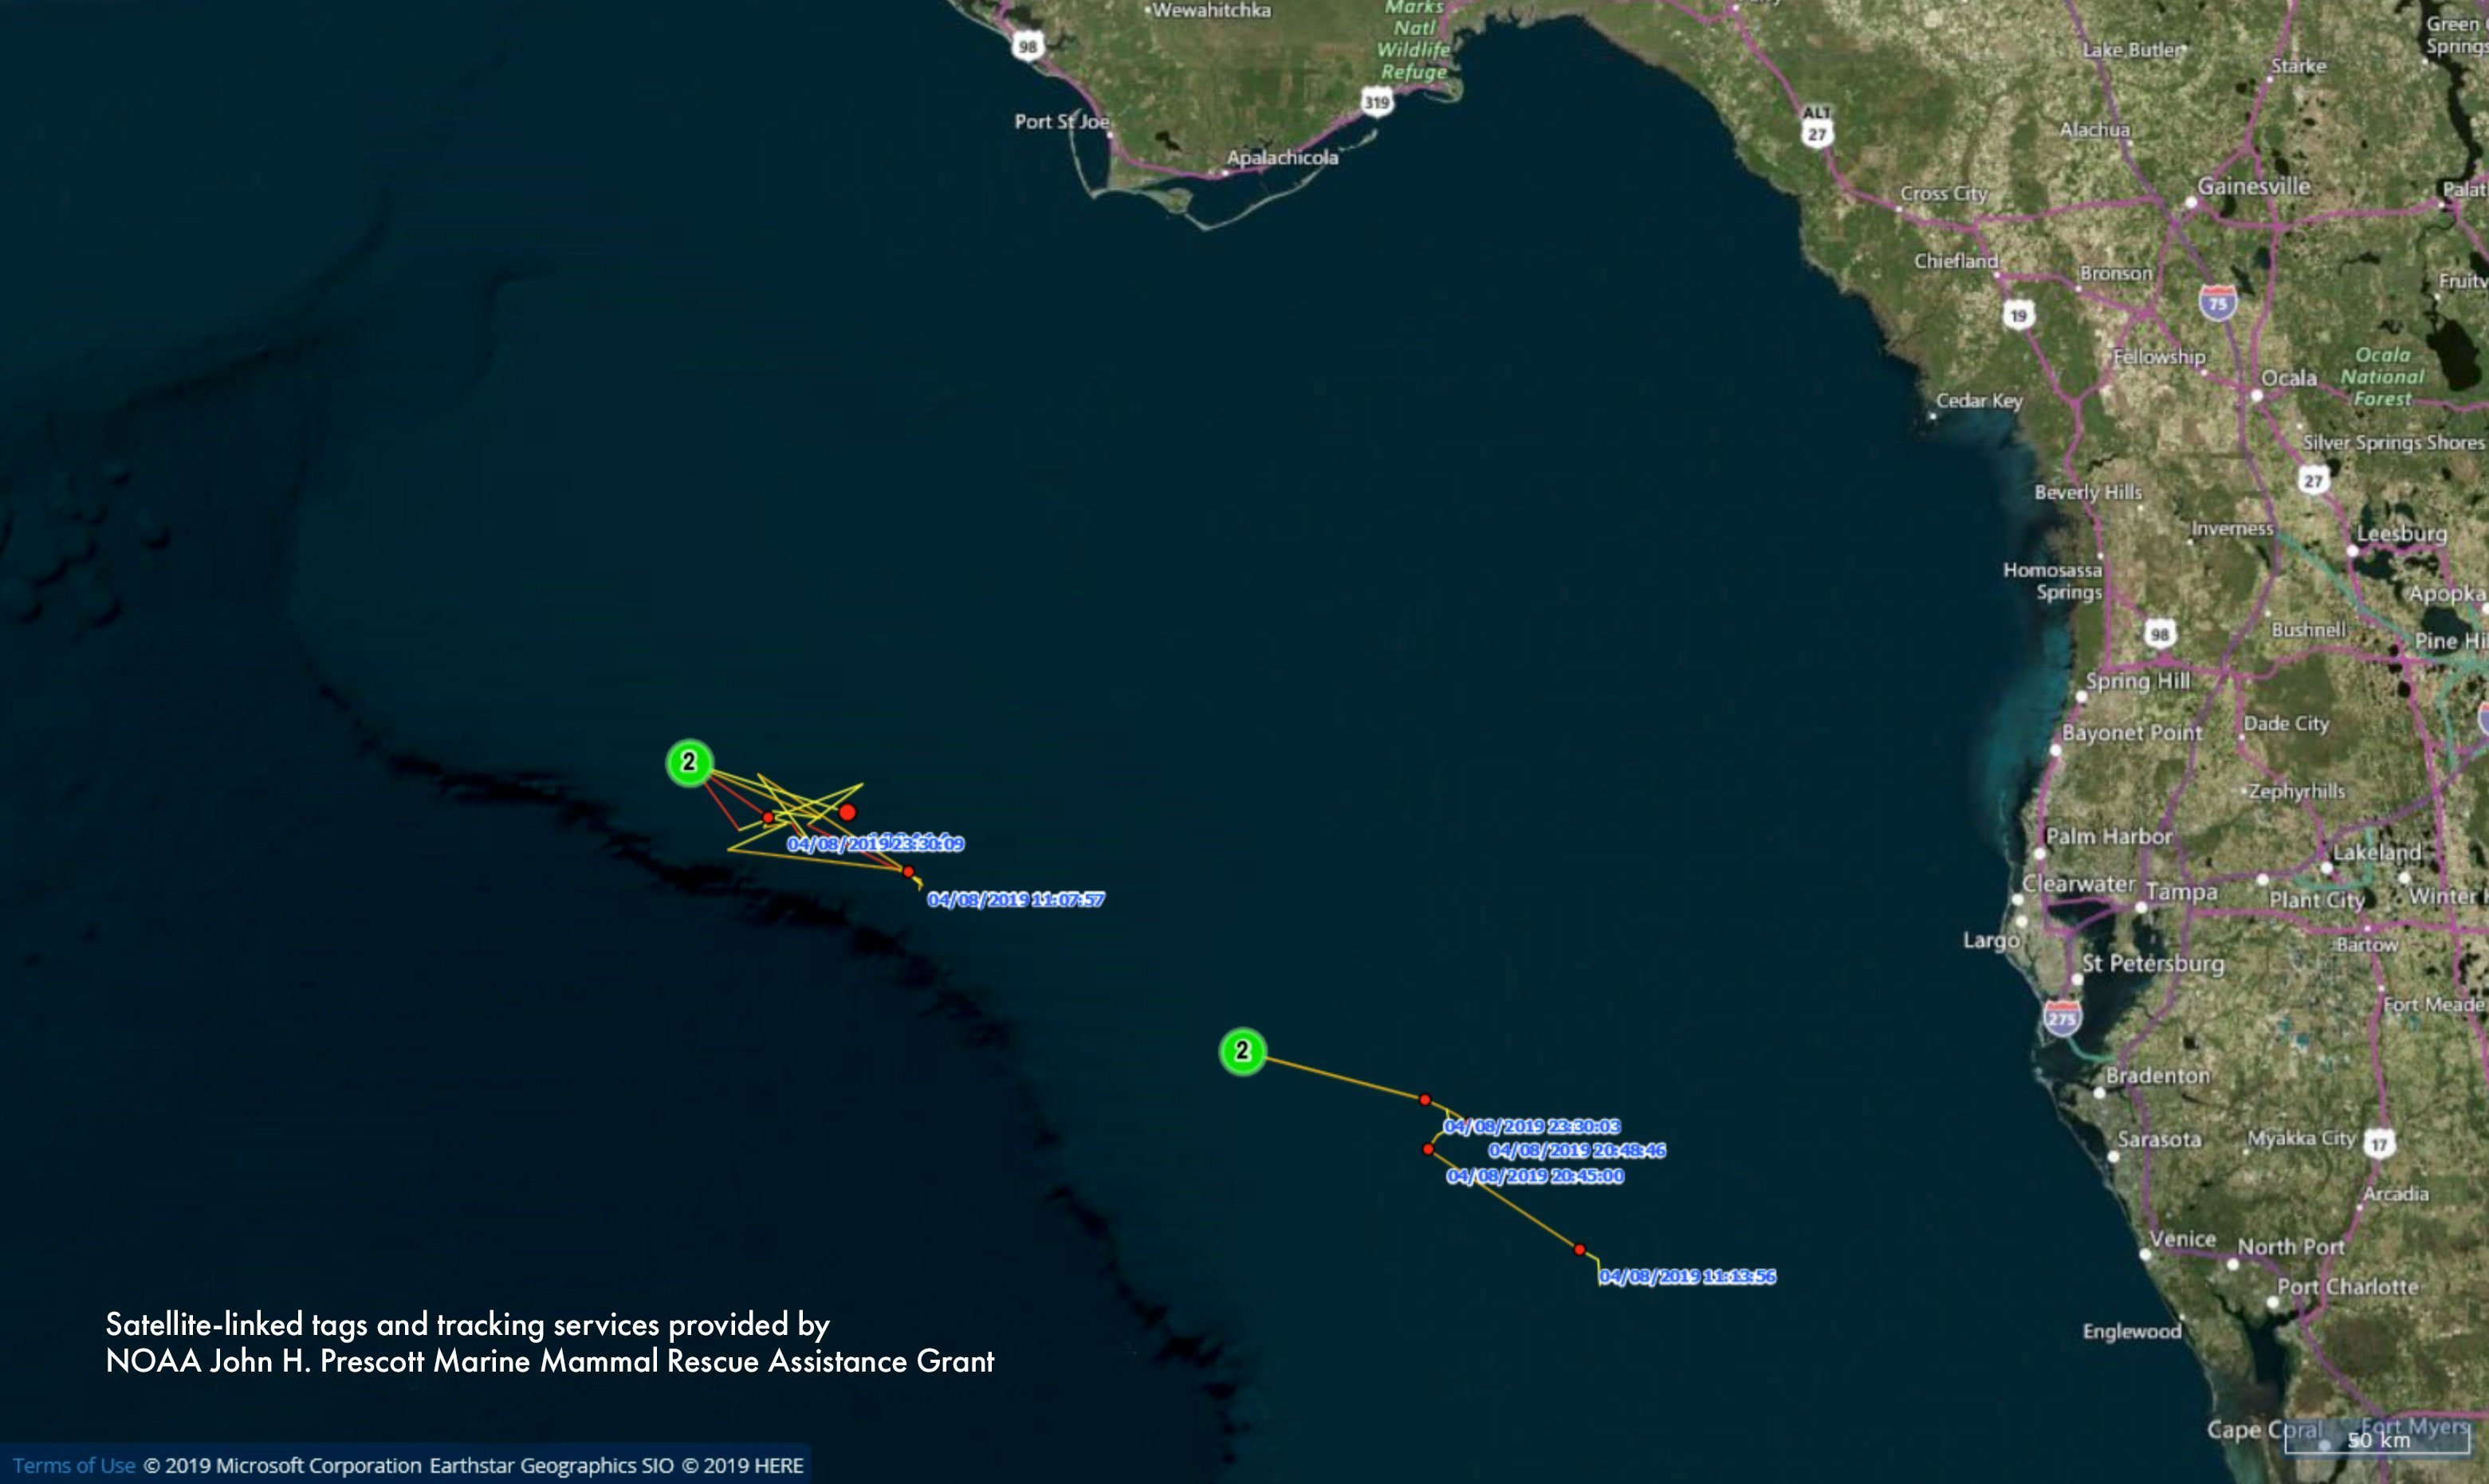 Pilot whale tracking update